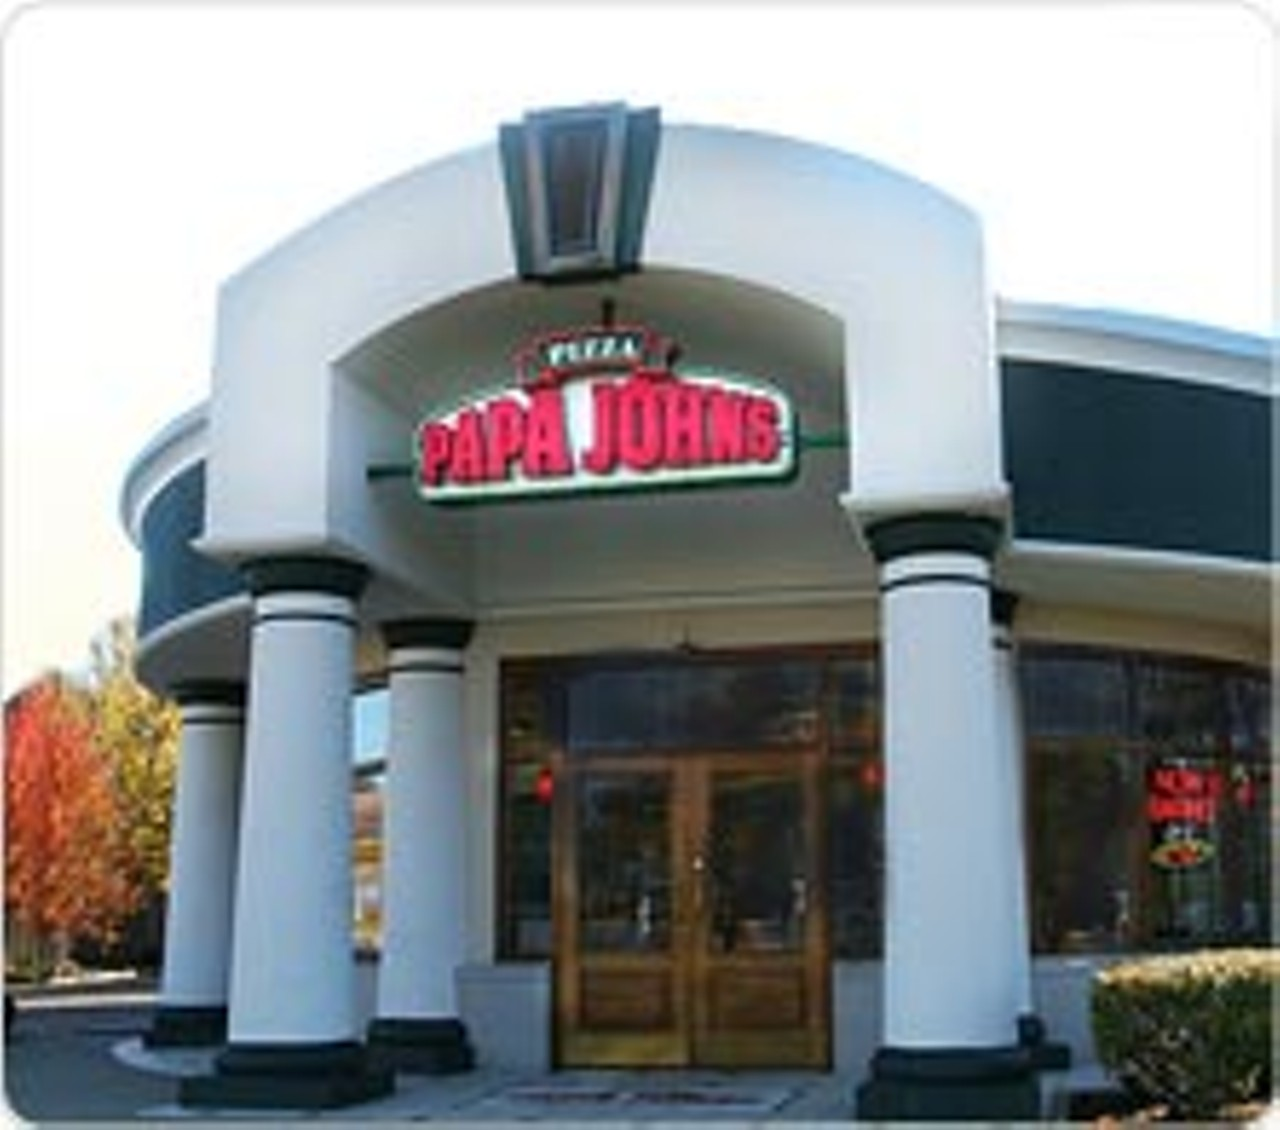 Each Papa John's pizza is carefully crafted with flavorful, superior-quality ingredients and toppings. Order pizza online for delivery or carryout.